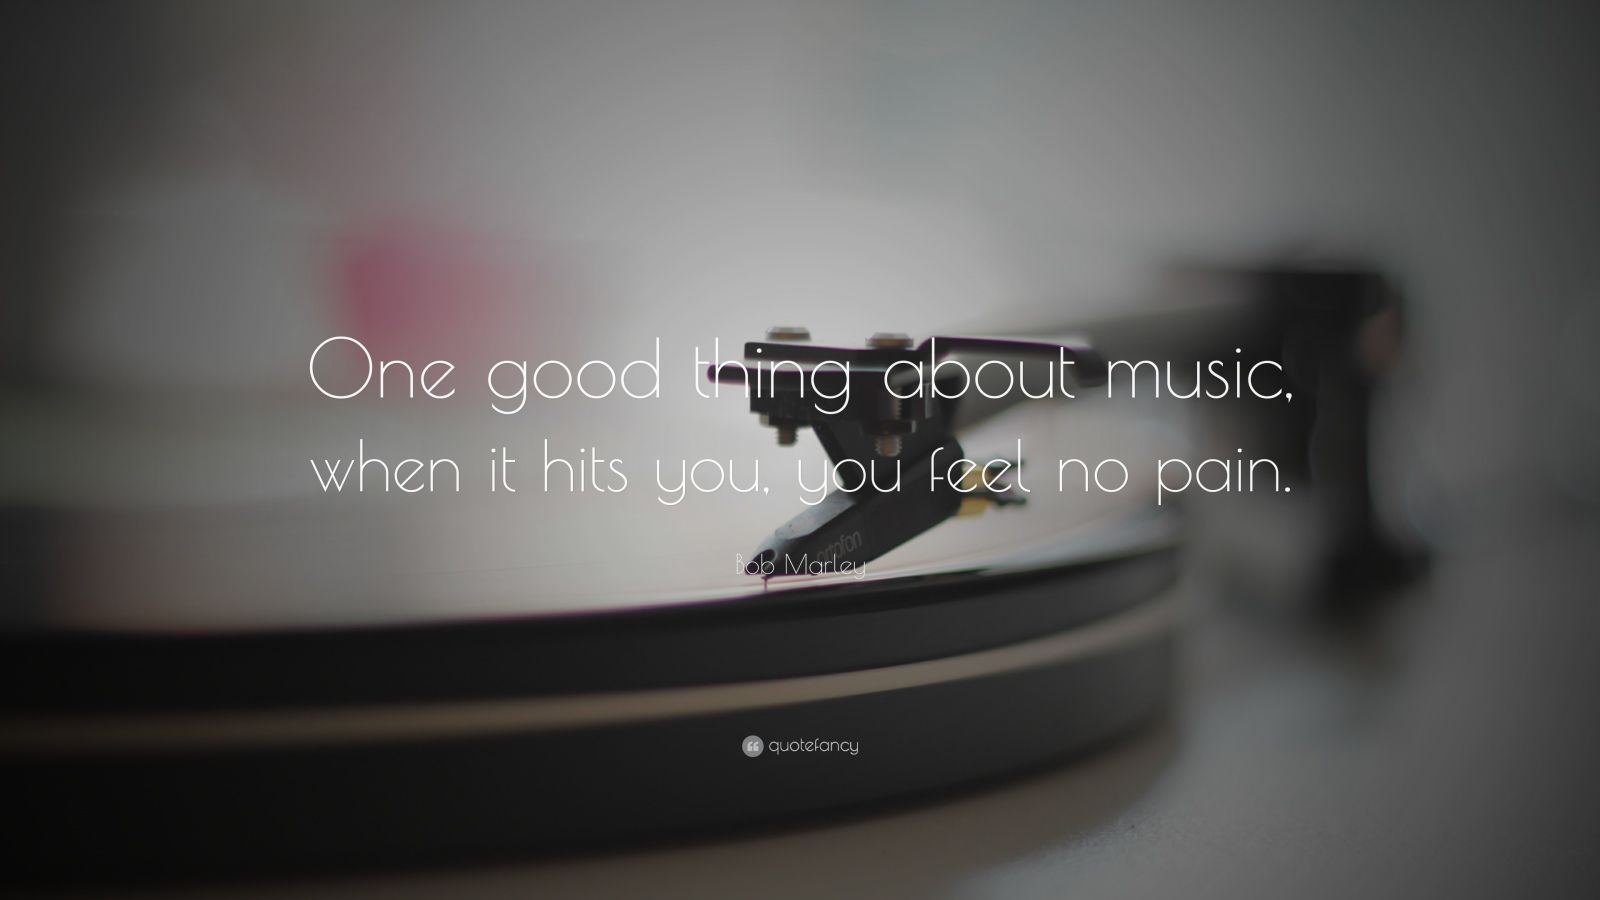 Lovely Music Quotes: U201cOne Good Thing About Music, When It Hits You, You